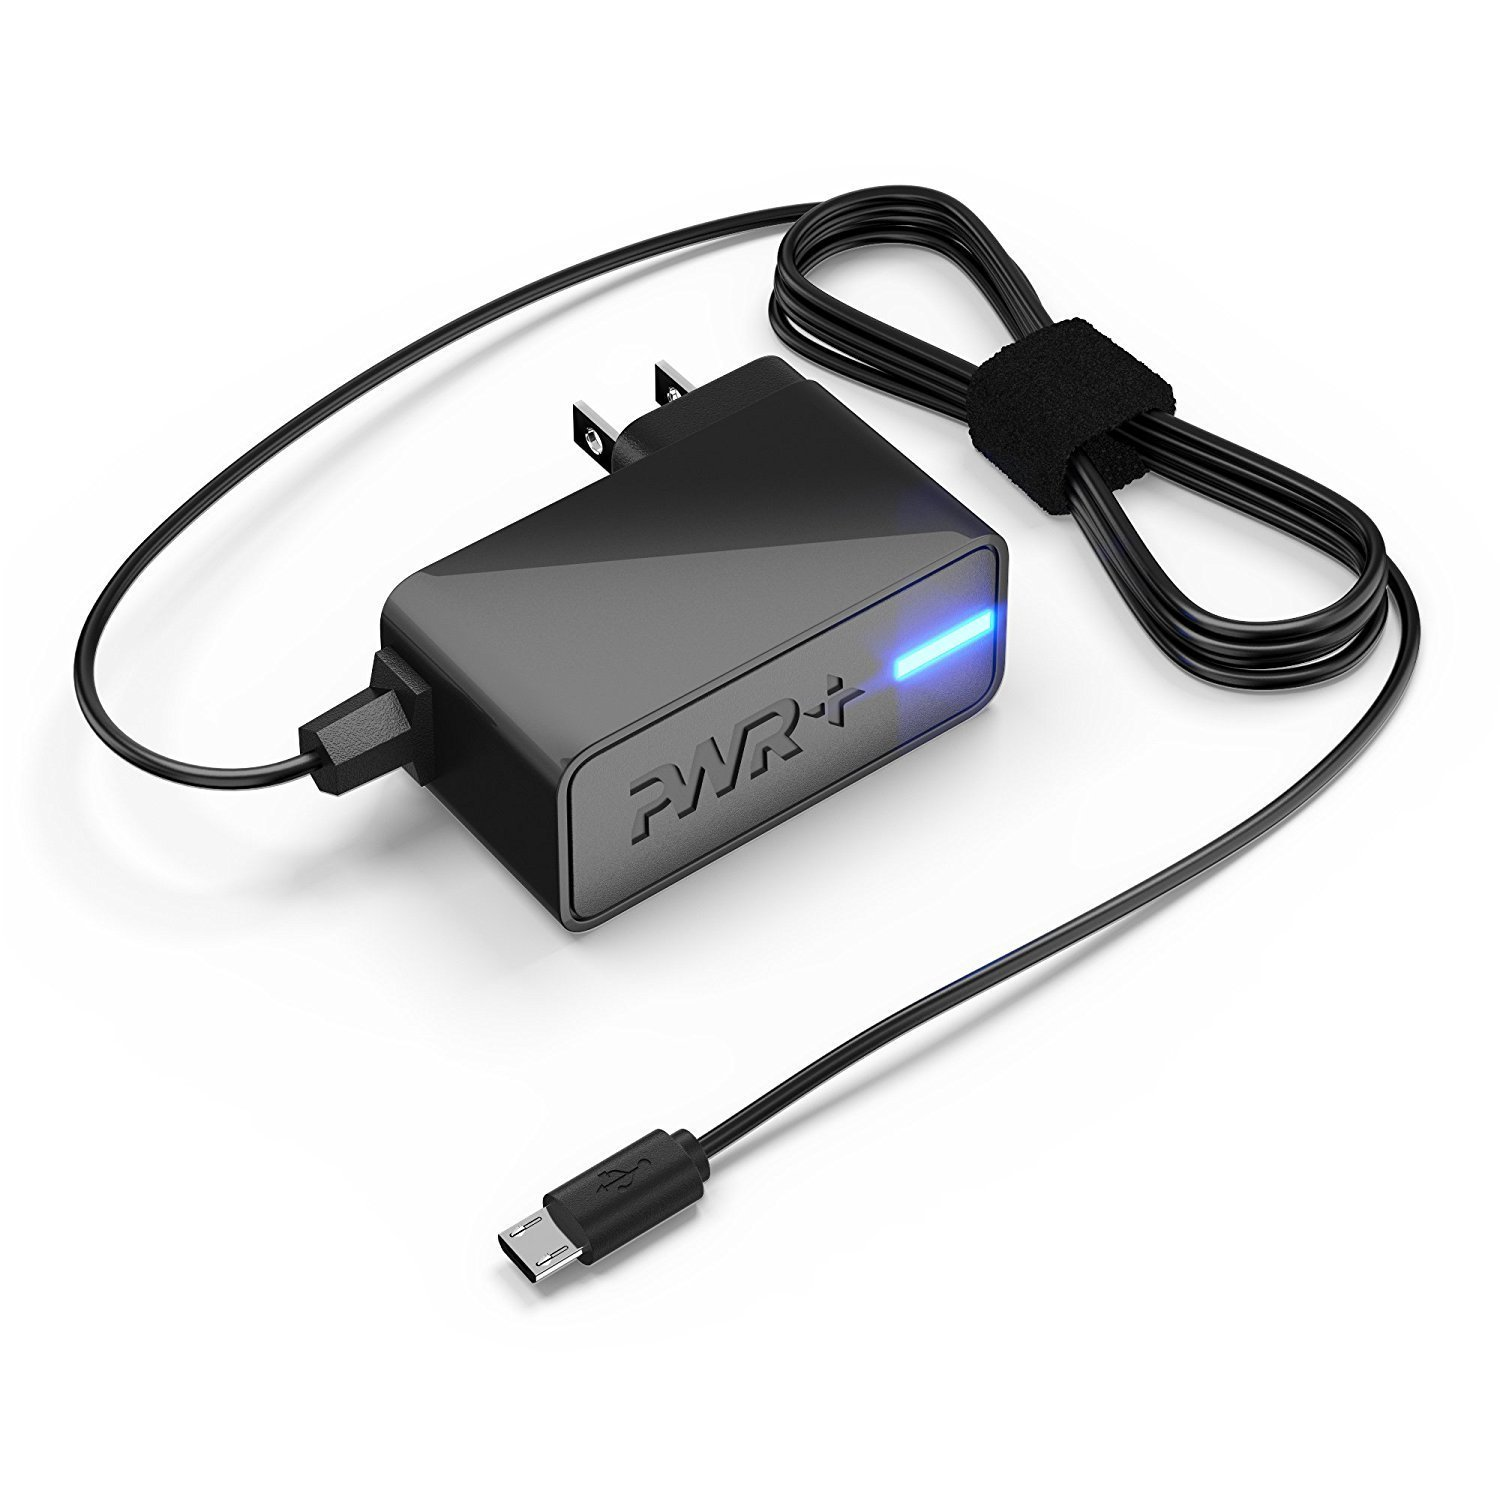 Amazon Pwr 10W Quick Charger for Tablet PCs EXTRA LONG 6 7 Ft [UL Listed] Safety Universal patibility Nextbook Visual Land DigiLand Insignia